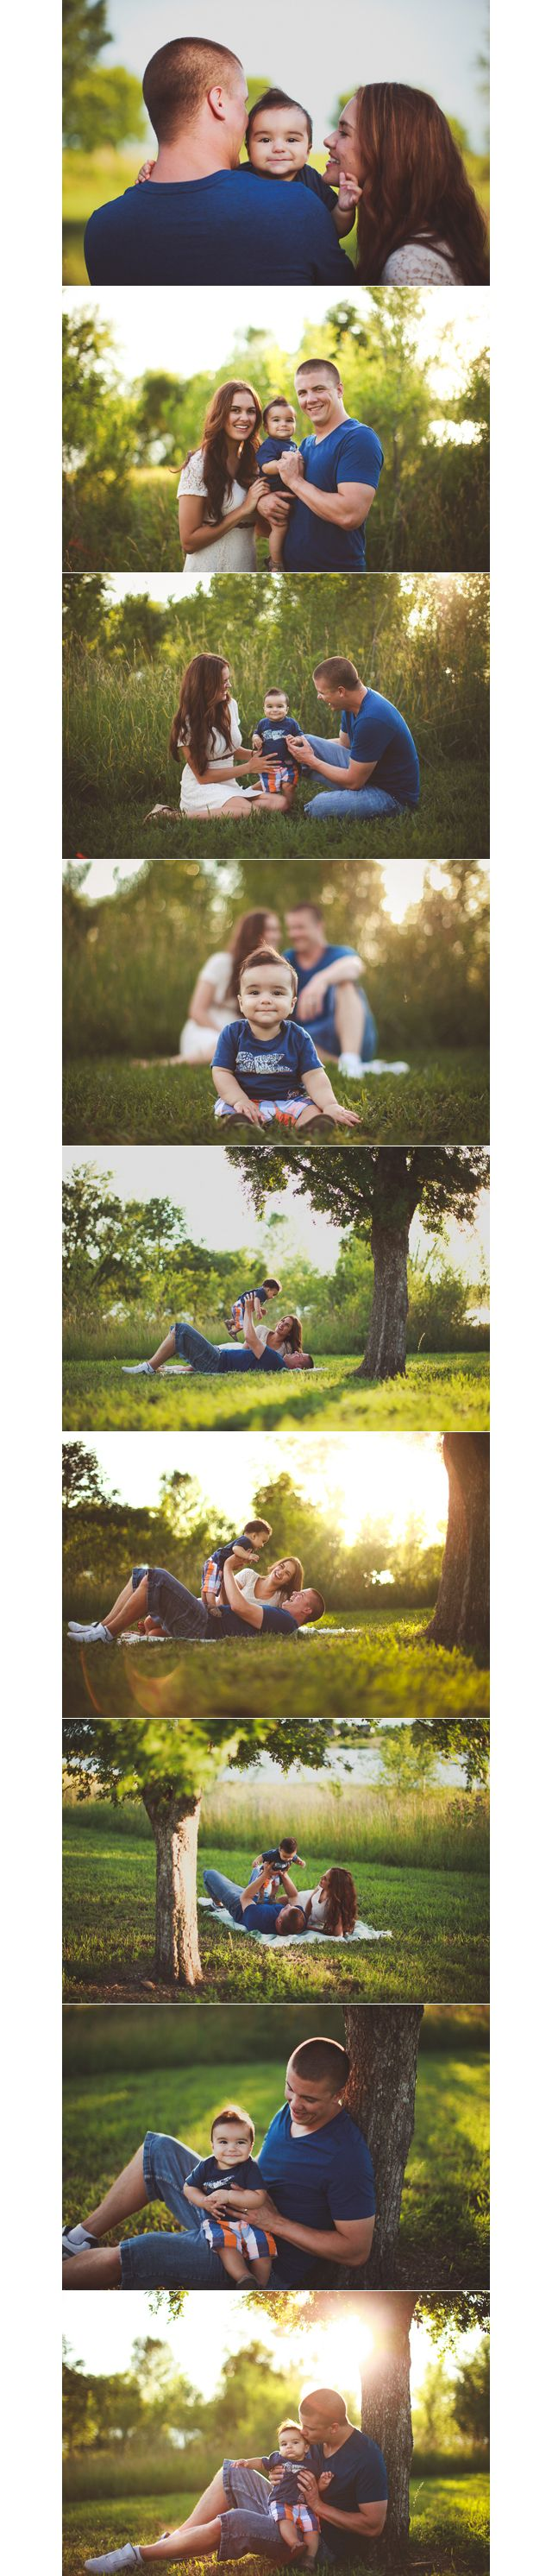 Ashley Crawford Photography|Family Photography Inspiration « Evoking You|Inspiration for your photography